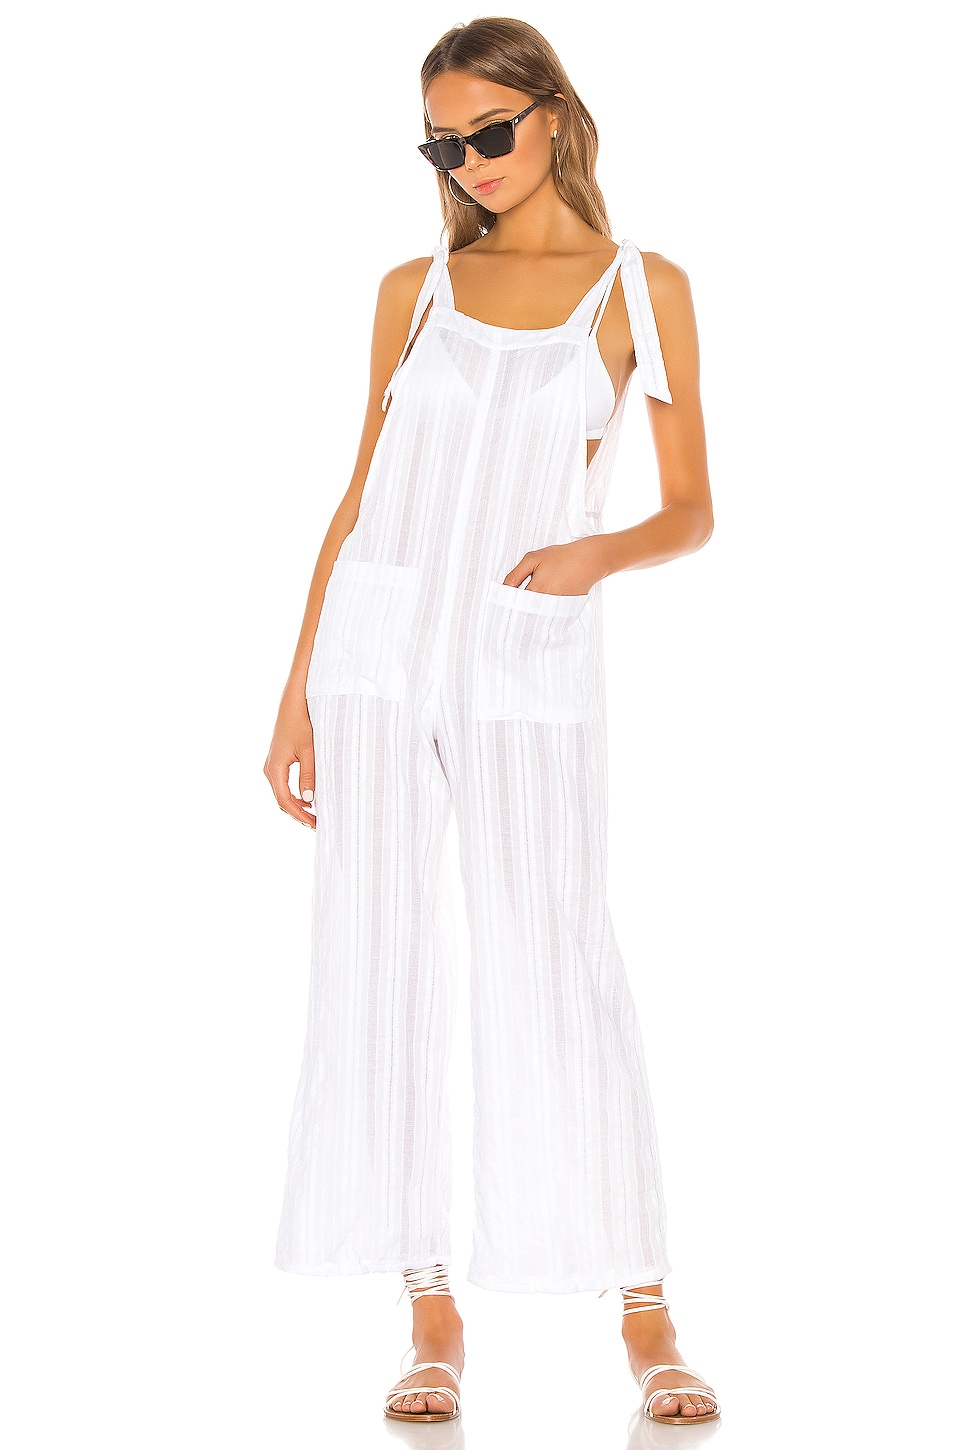 Beach Bunny Daisy Jumpsuit in White